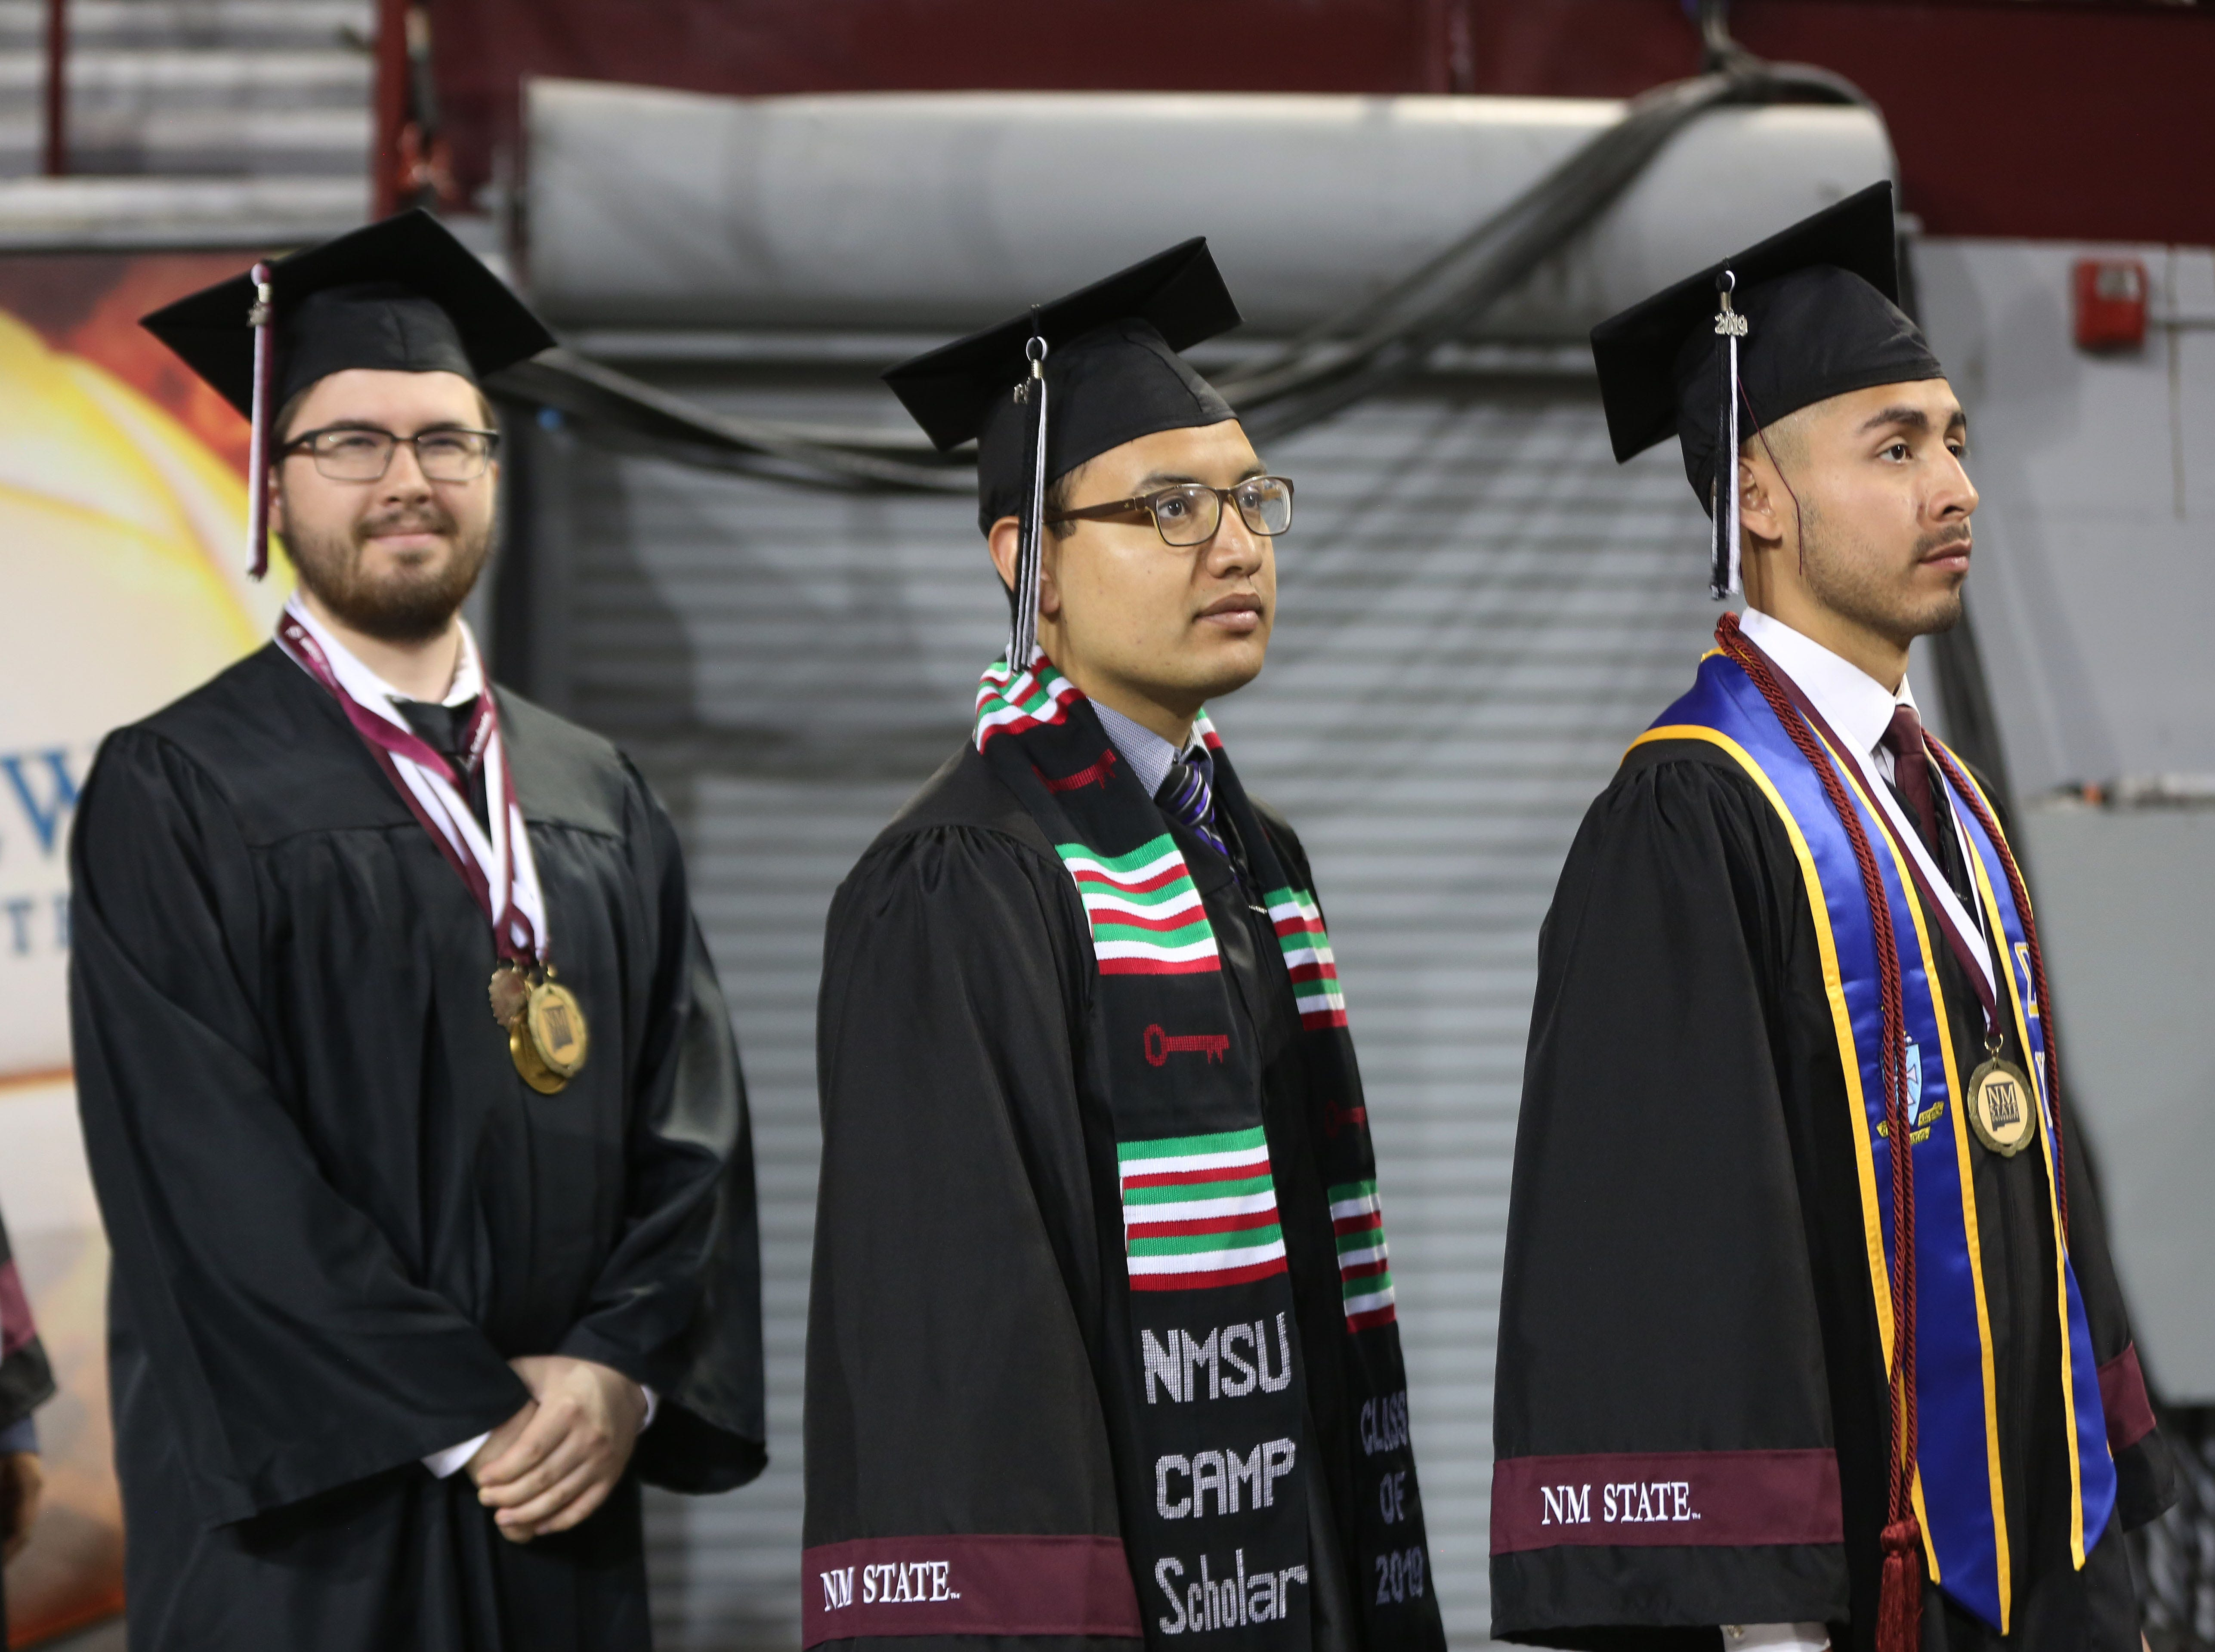 Students wait to be seated for graduation at New Mexico State Universities commencement ceremony Saturday May 11, 2019.